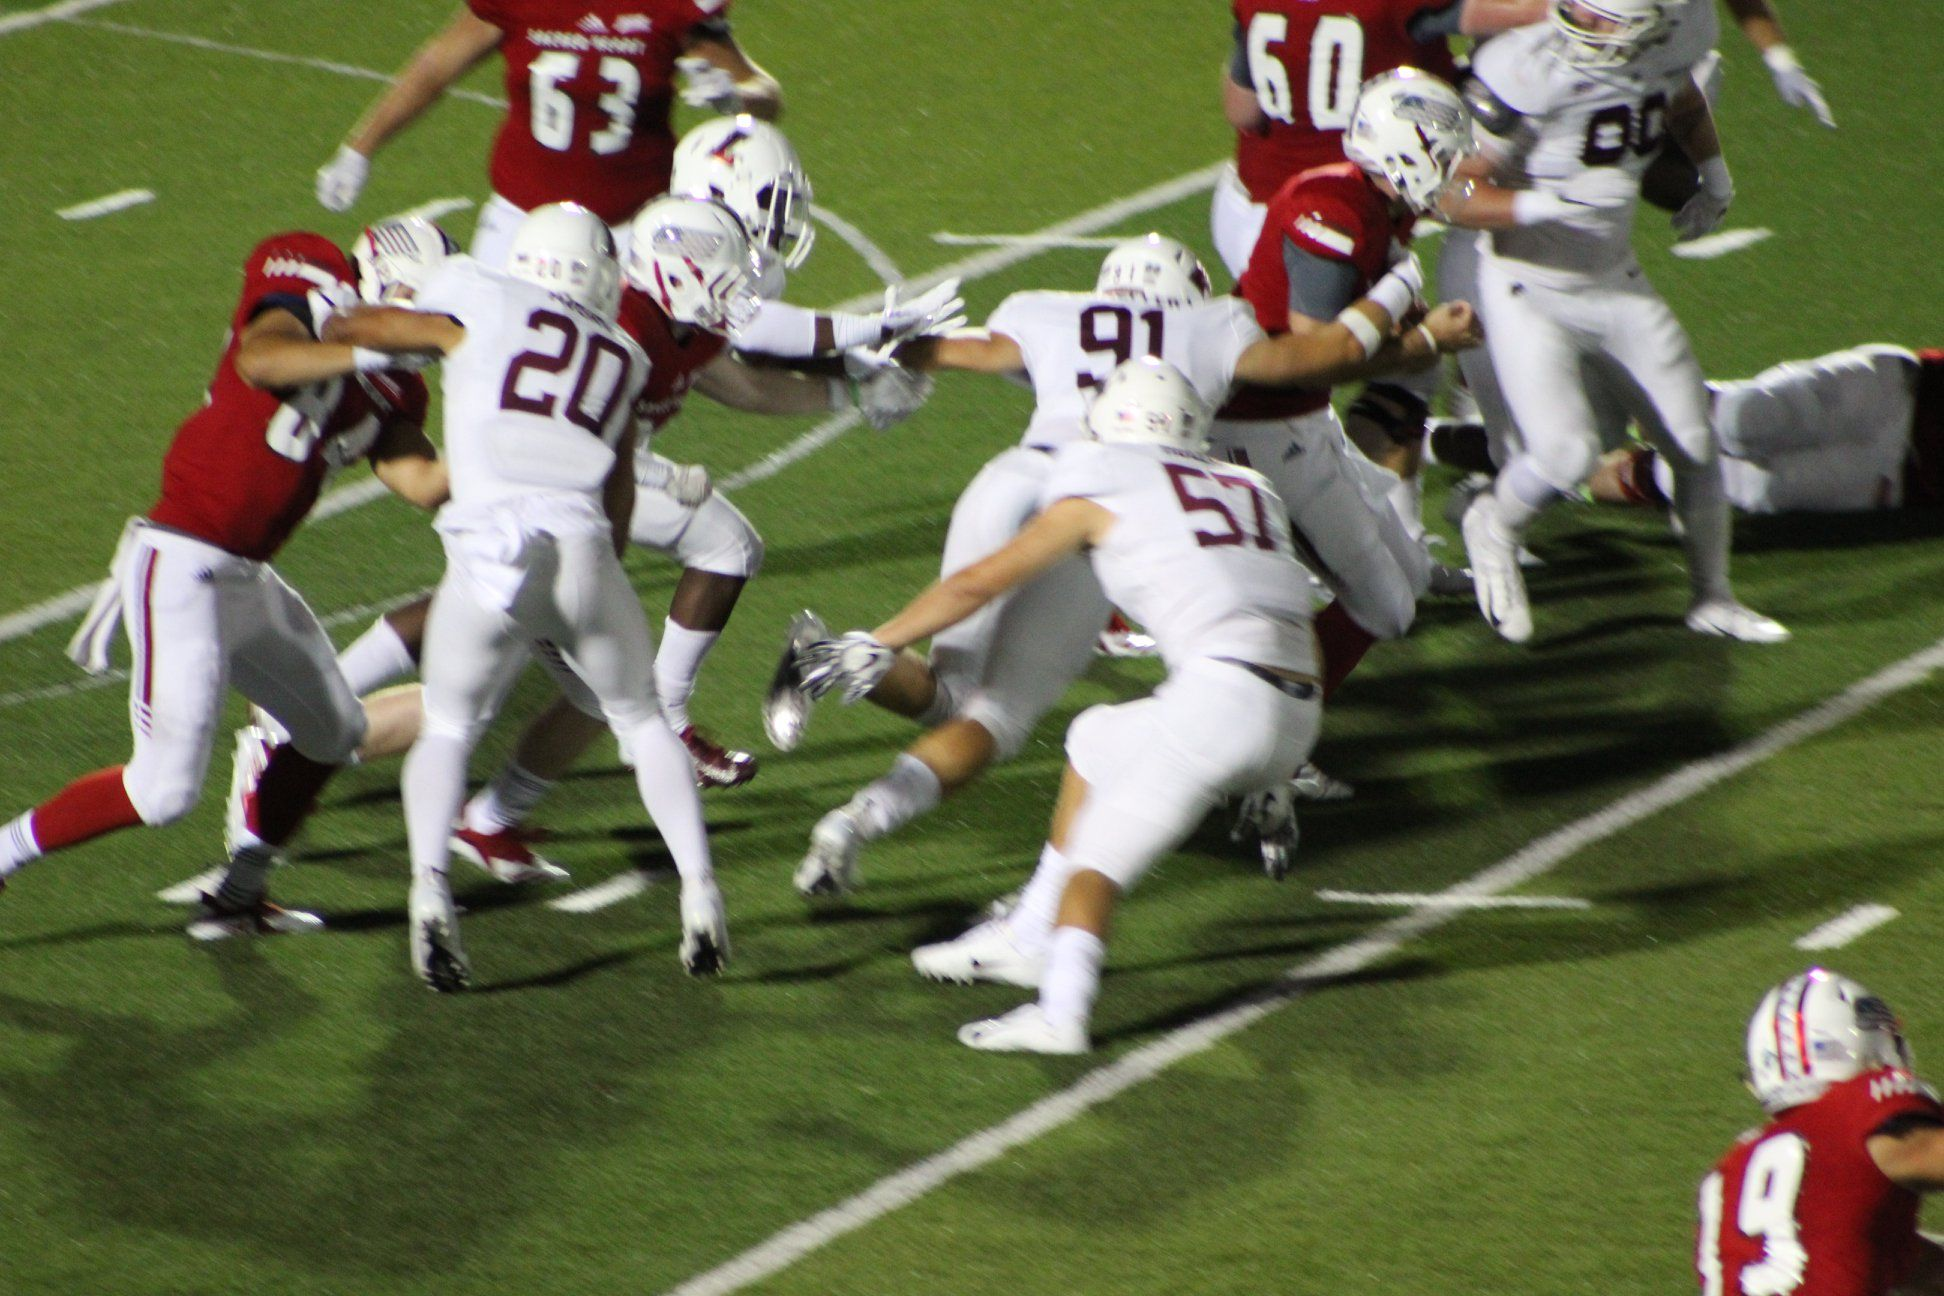 Pin by Brandon Hurley on Senior SHU RB 36 (With images